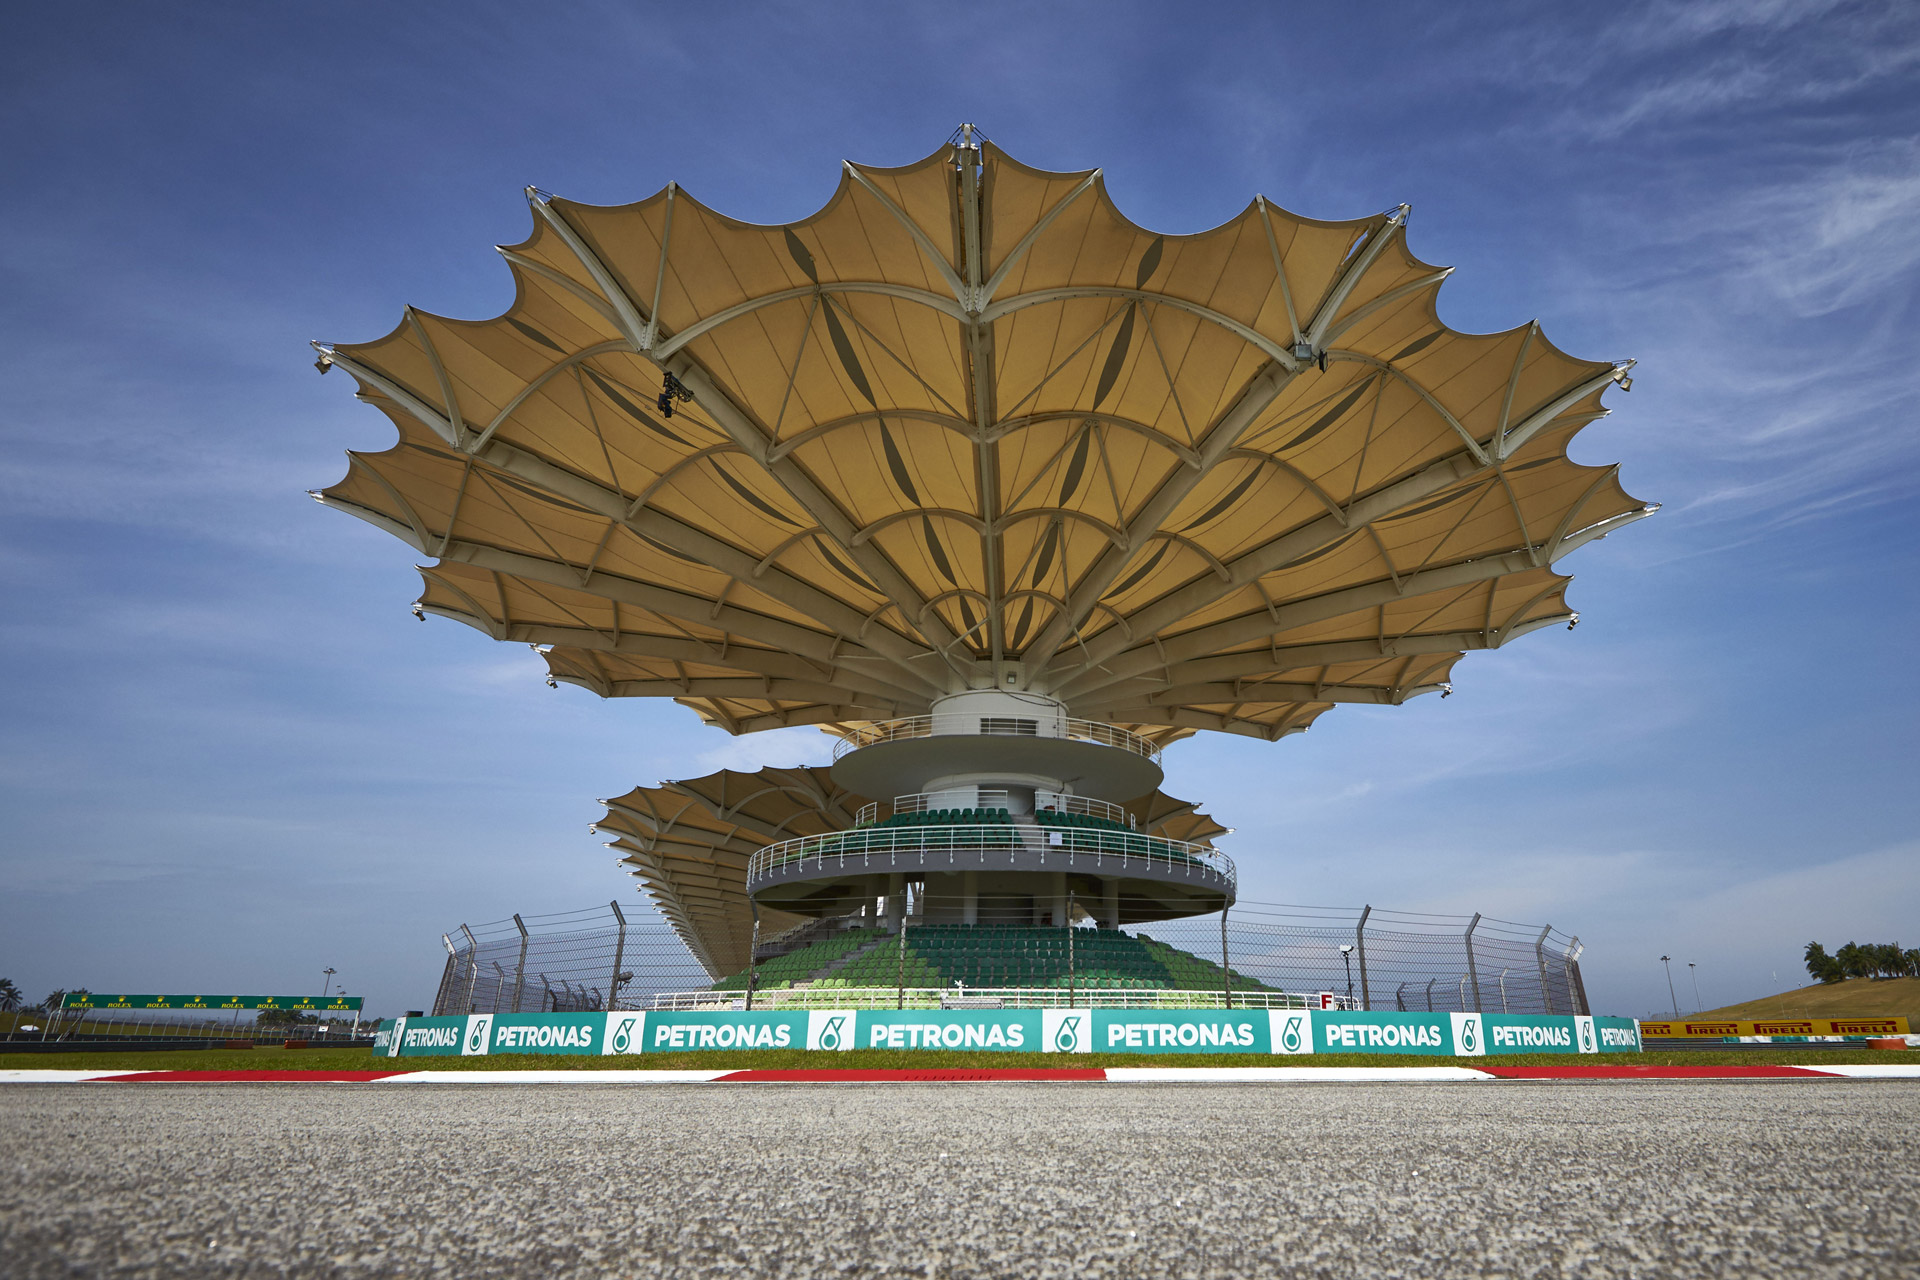 2015 formula one malaysian grand prix weather forecast